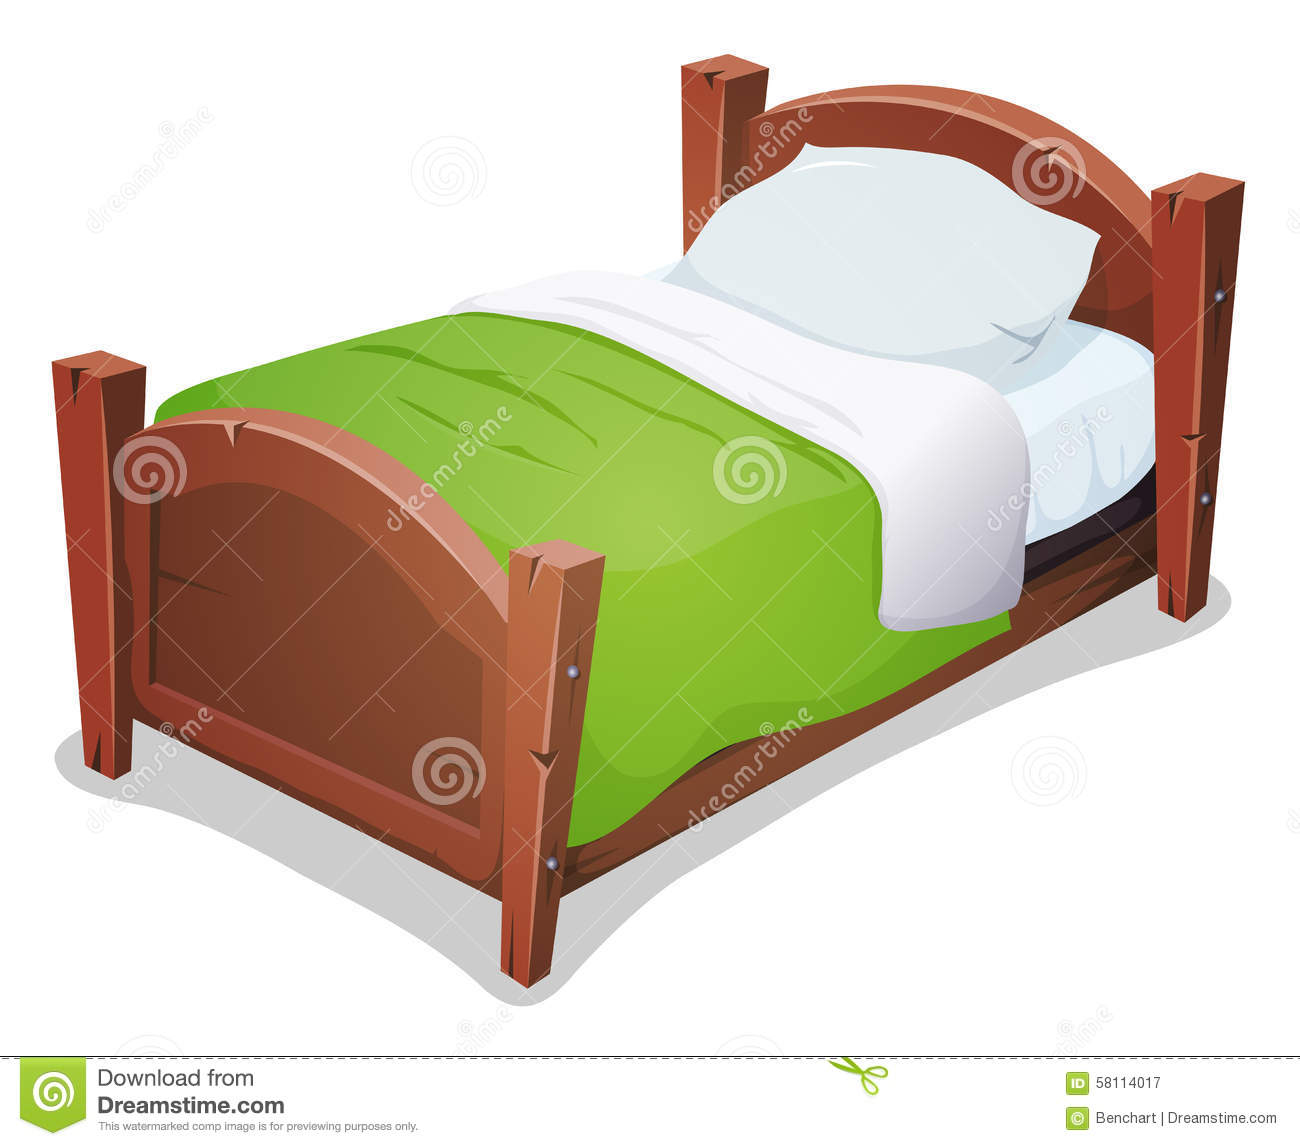 Amazing photo of Illustration of a cartoon wooden children bed for boys and girls with  with #749D2E color and 1300x1146 pixels